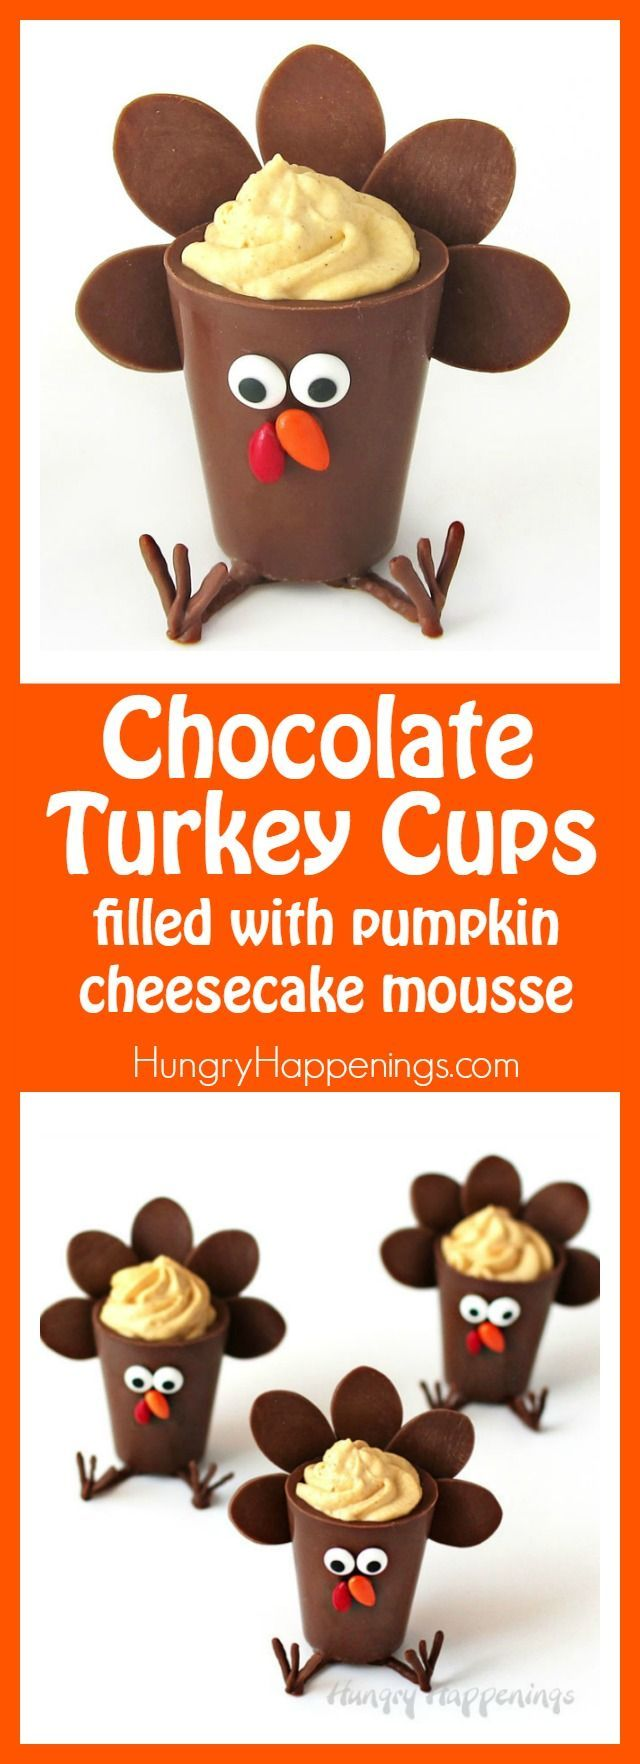 Surprise your party guests this Thanksgiving by serving these sweet little Chocolate Turkey Cups filled with Pumpkin Cheesecake Mousse. Watch the video tutorial to see how to make and decorate these holiday treats.